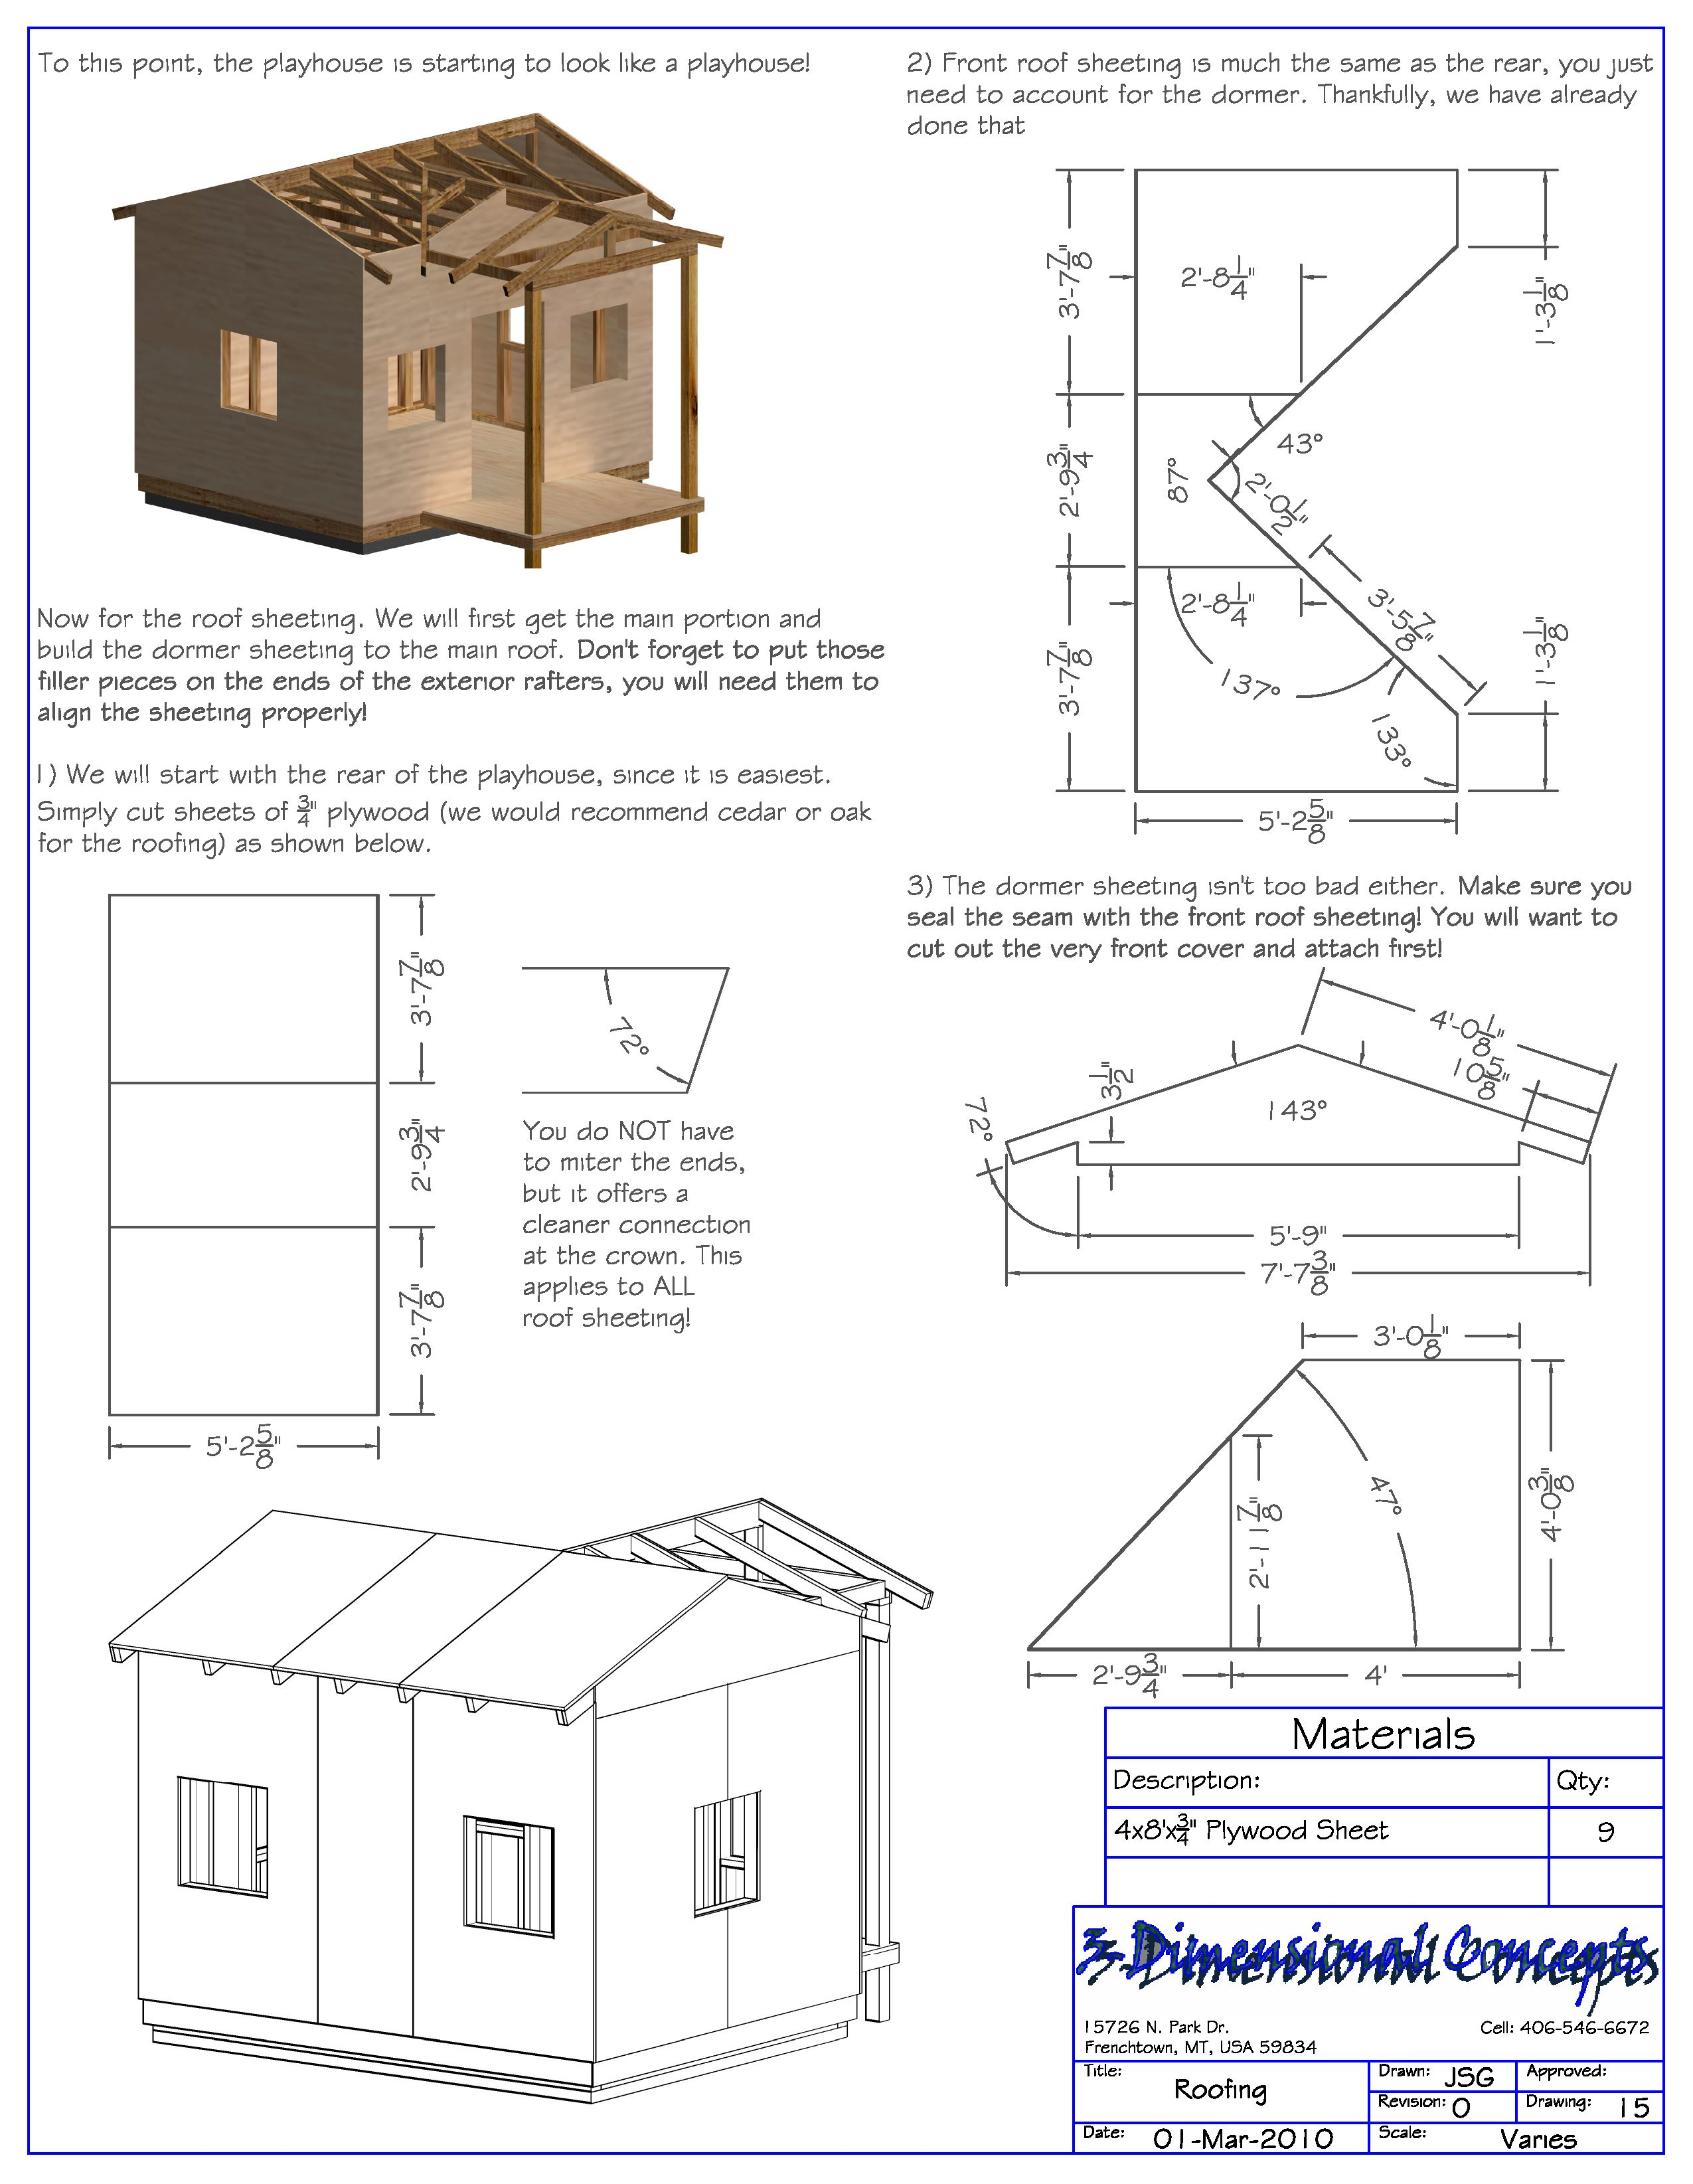 Surprising Three Bedroom House Plans Wendy House Uncategorized Wooden Wendy House Plan Singular For Stunning Free Play Houses Wood Playhouse Playhouse Plans